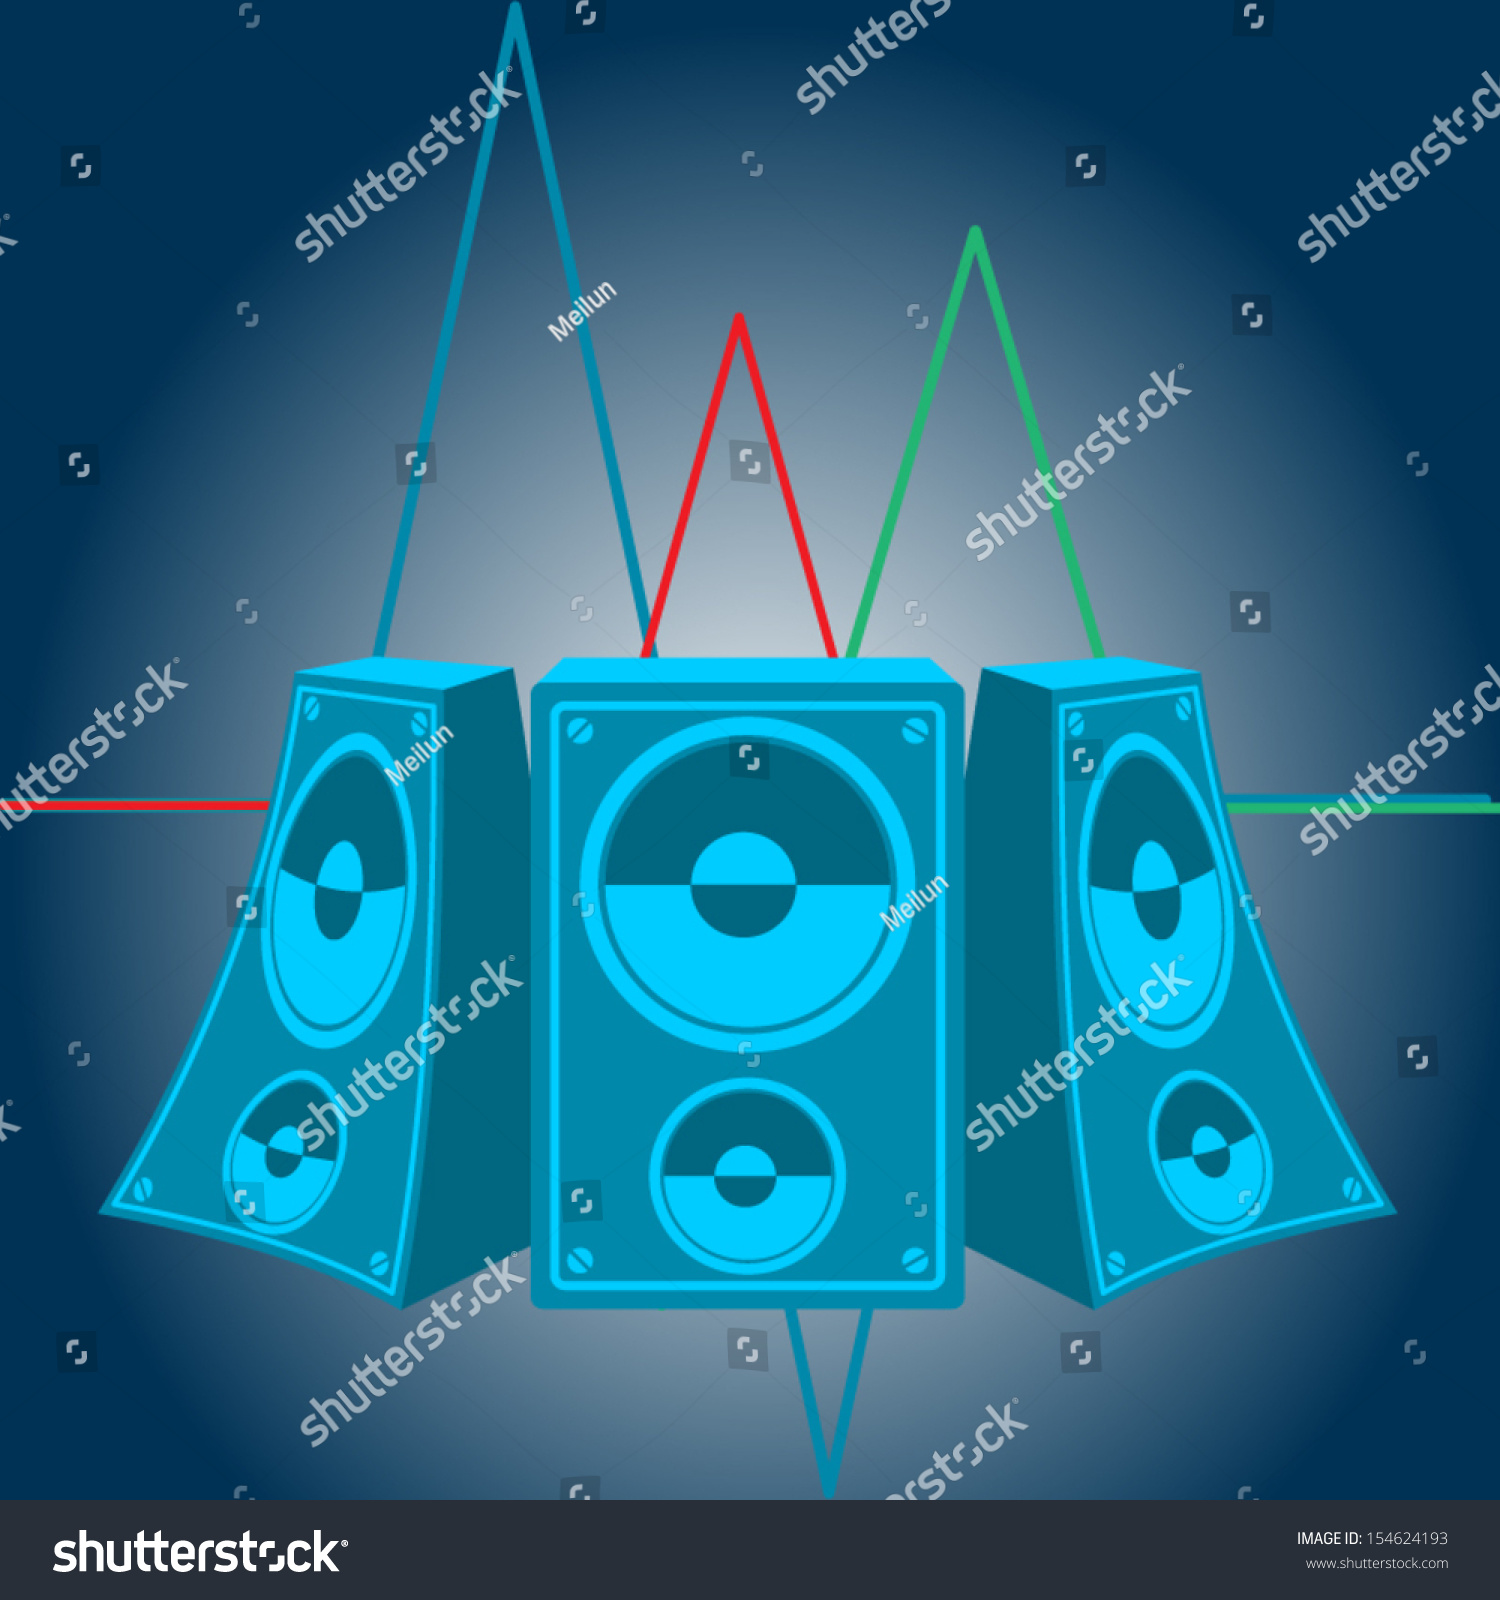 Sound Card Oscilloscope Diagram Wiring For Professional Usb Soundcard Circuit With Pcm2702 Schematic Electronics Music Speakers Vector 154624193 Shutterstock Software Freeware Decimal To Bcd Decoder